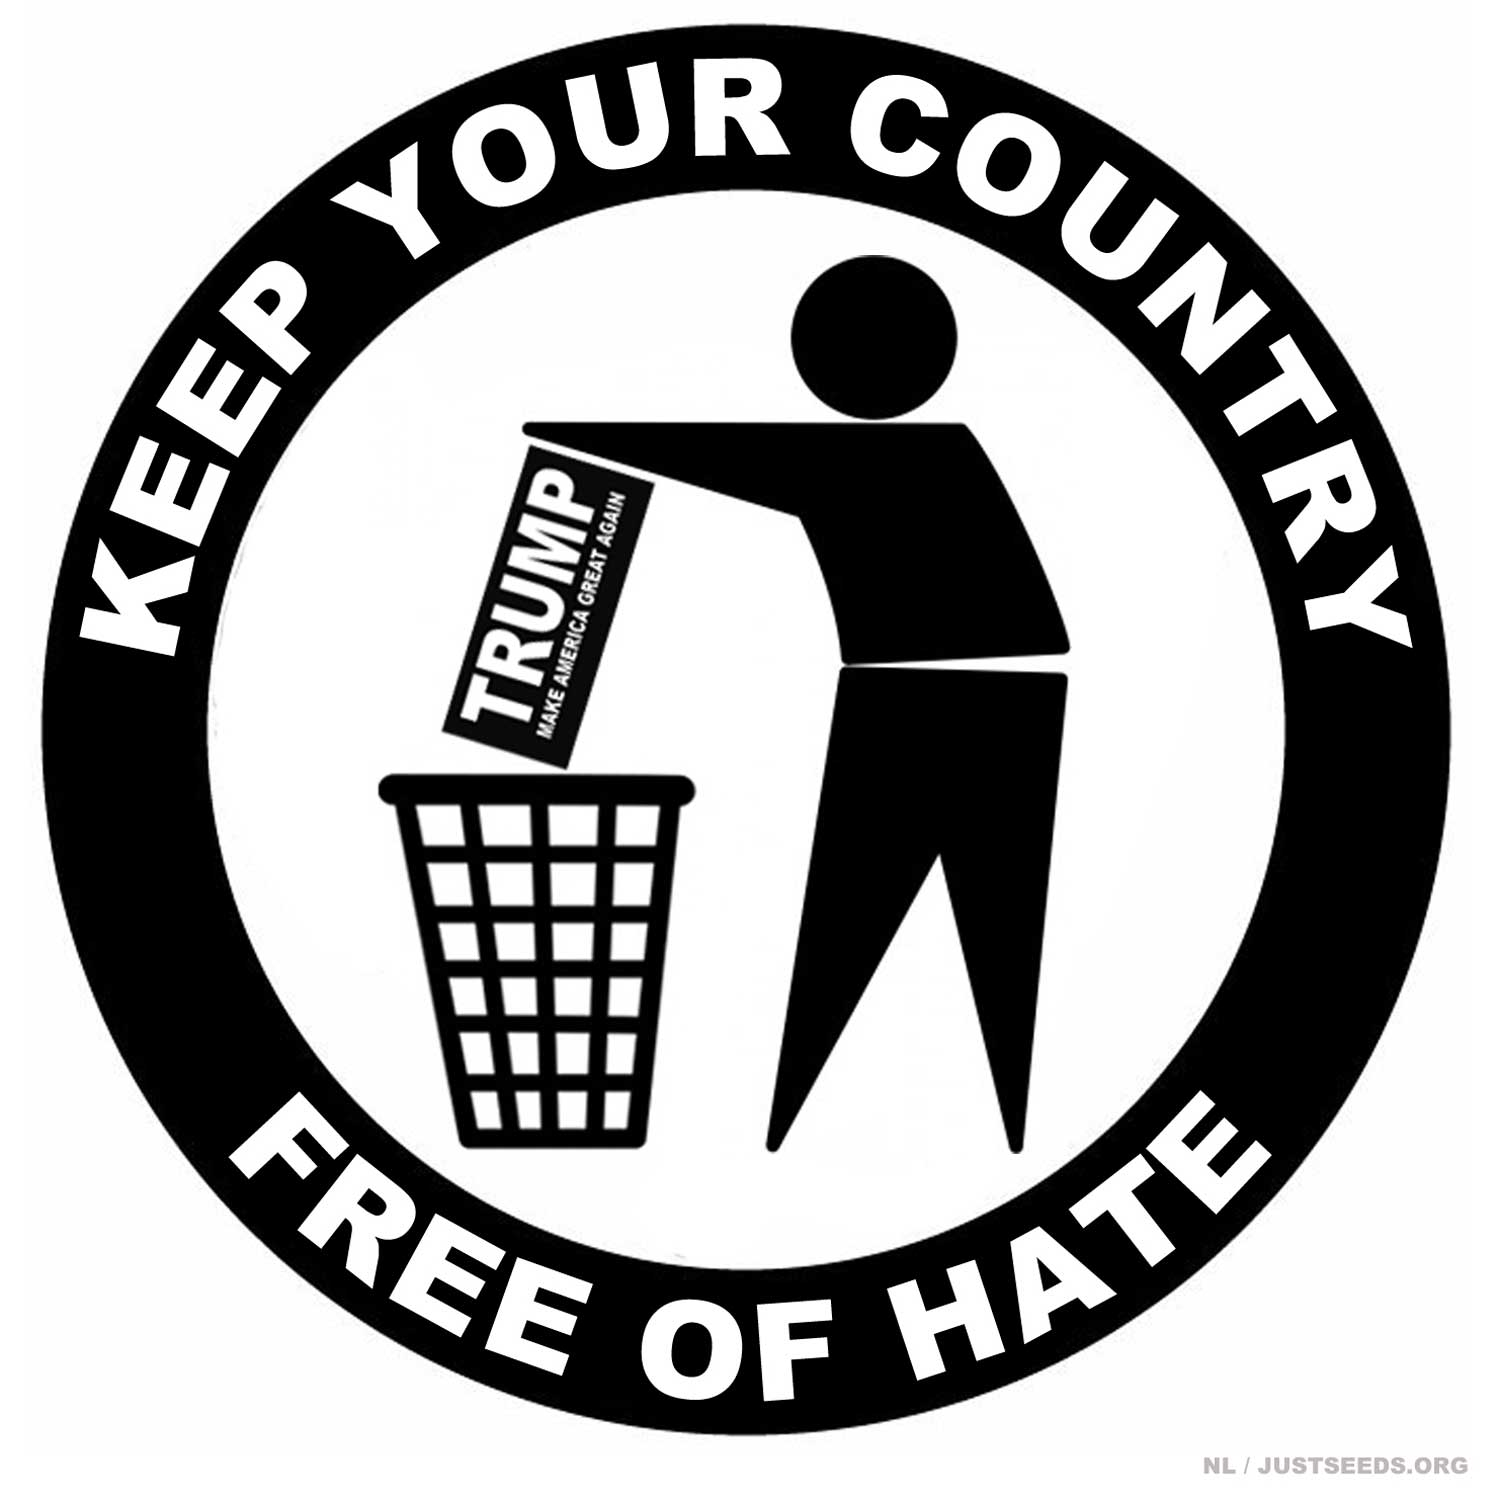 Justseeds | Keep Your Country Free of Hate